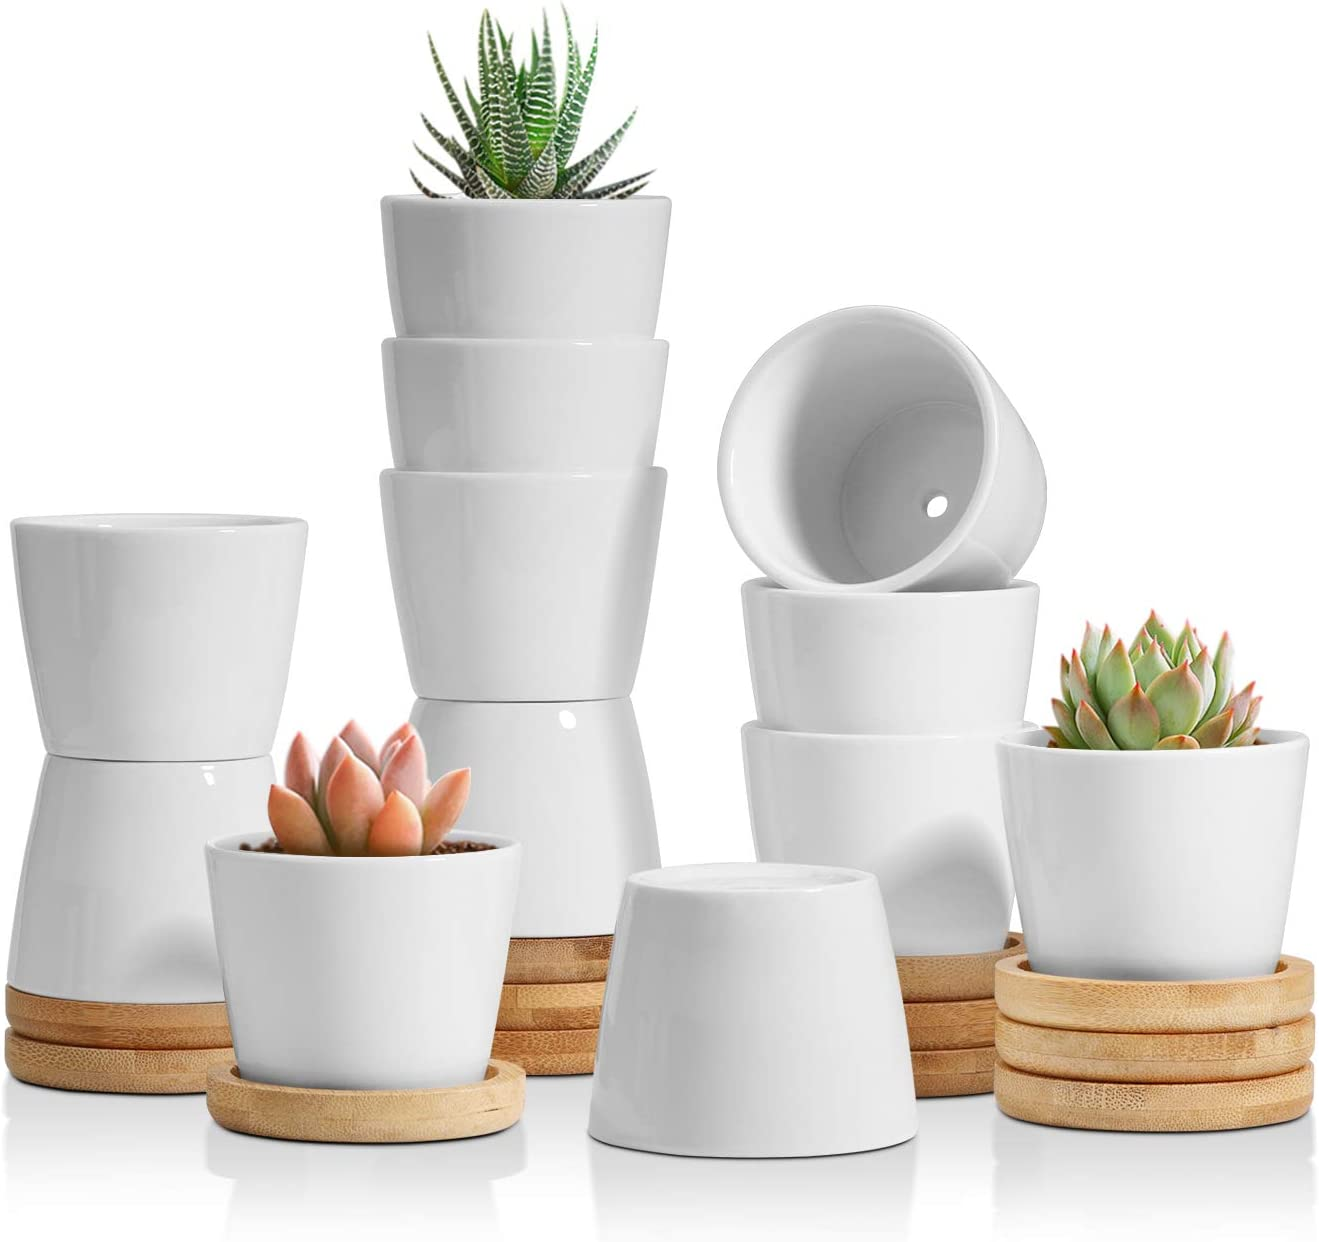 T4U 2.5 Inch Small White Succulent Planter Pots with Bamboo Tray Round Set of 12, Ceramic Succulent Air Plant Flower Pots Cactus Faux Plants Containers, White Modern Decor for Home and Office